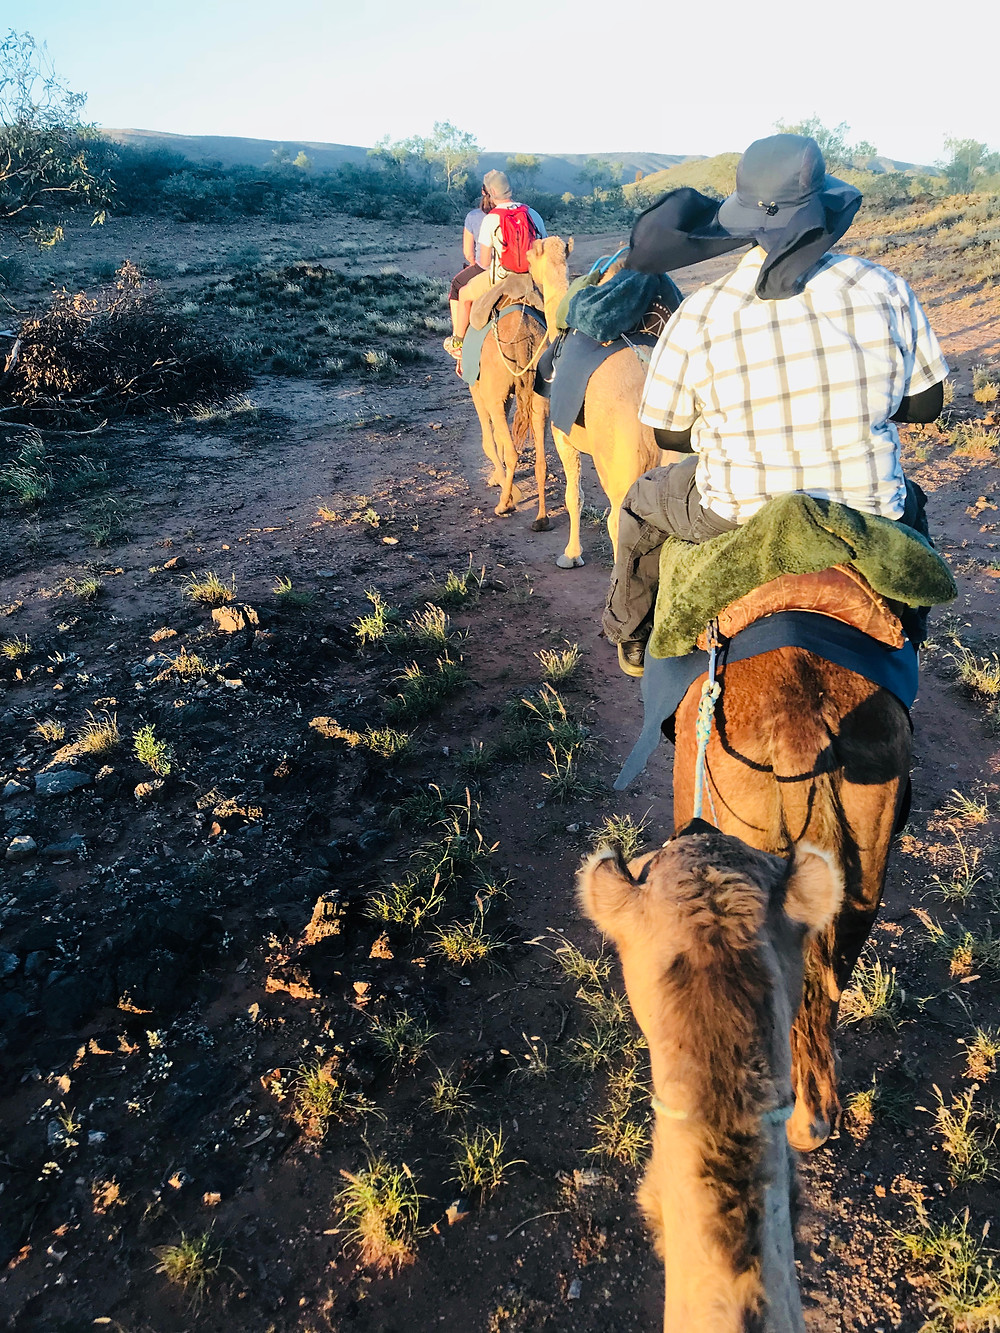 Riding Camels in The Outback by Kita the Explorer